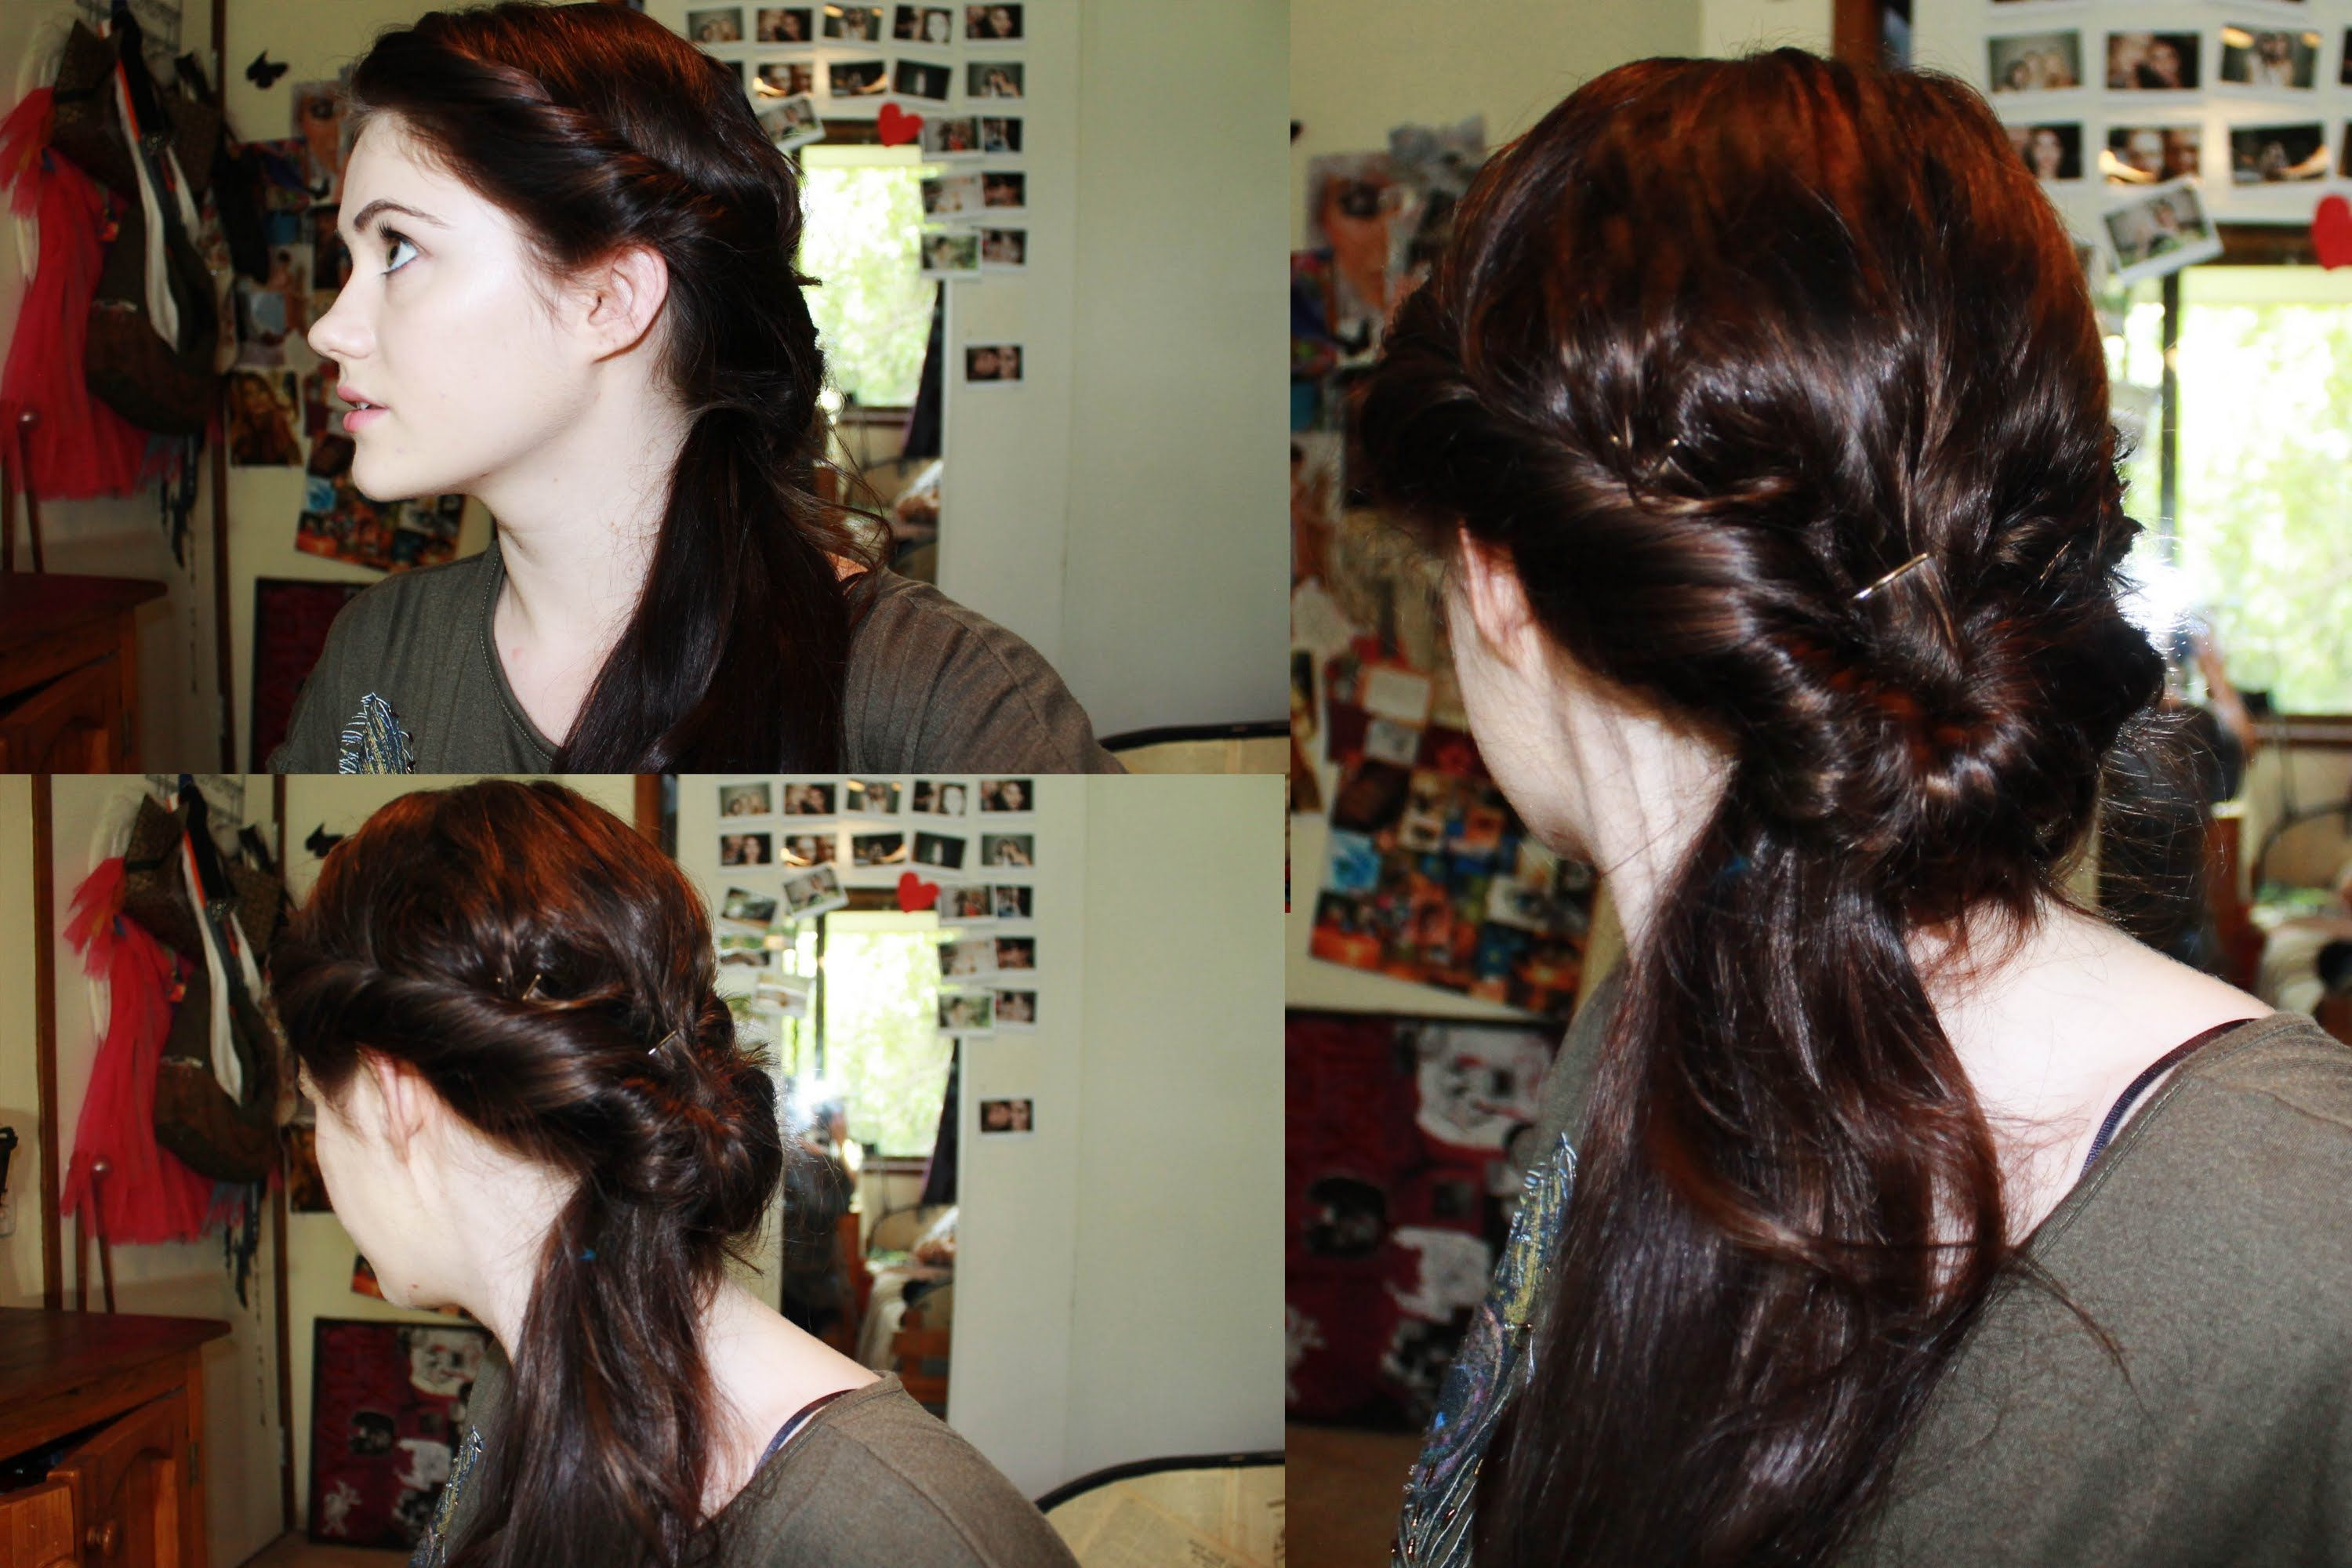 Hansel and Gretel witch hunters: Gretel's Hair | Great Hair ...